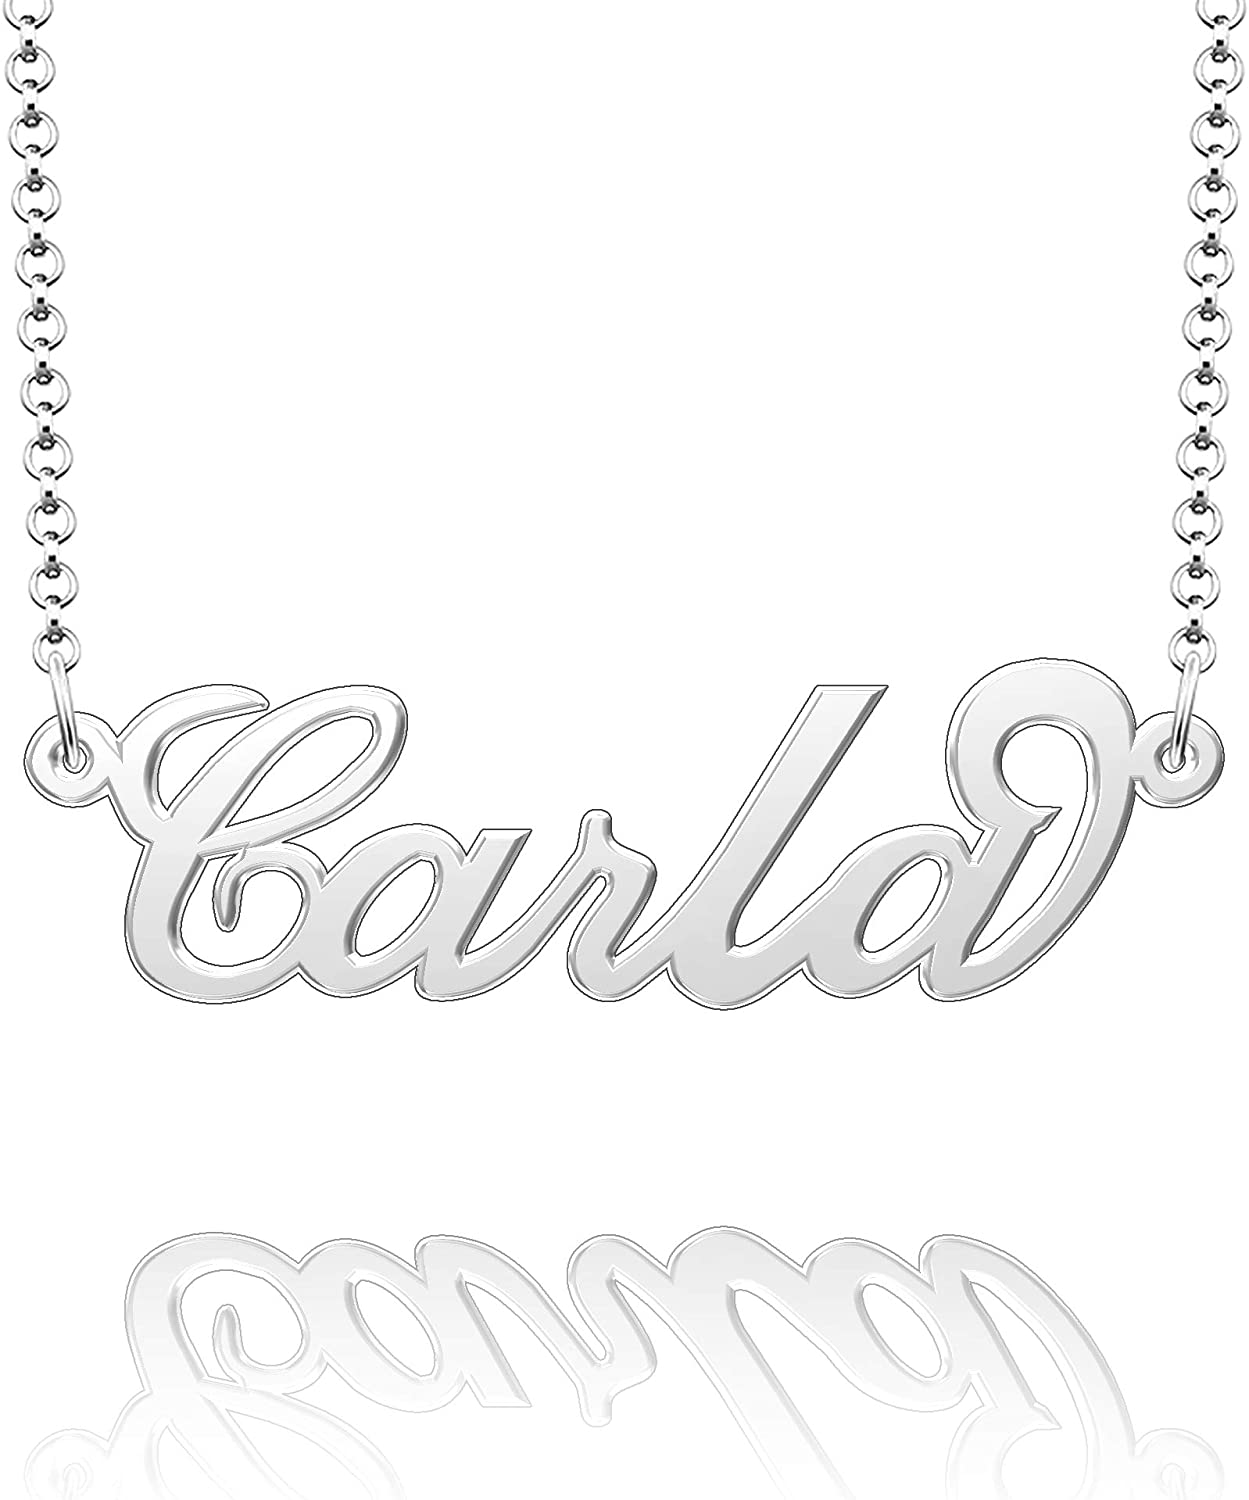 Moonlight Collections Script Necklace 926 Sterling Silver Pendant Chain Personalized Necklace Carla